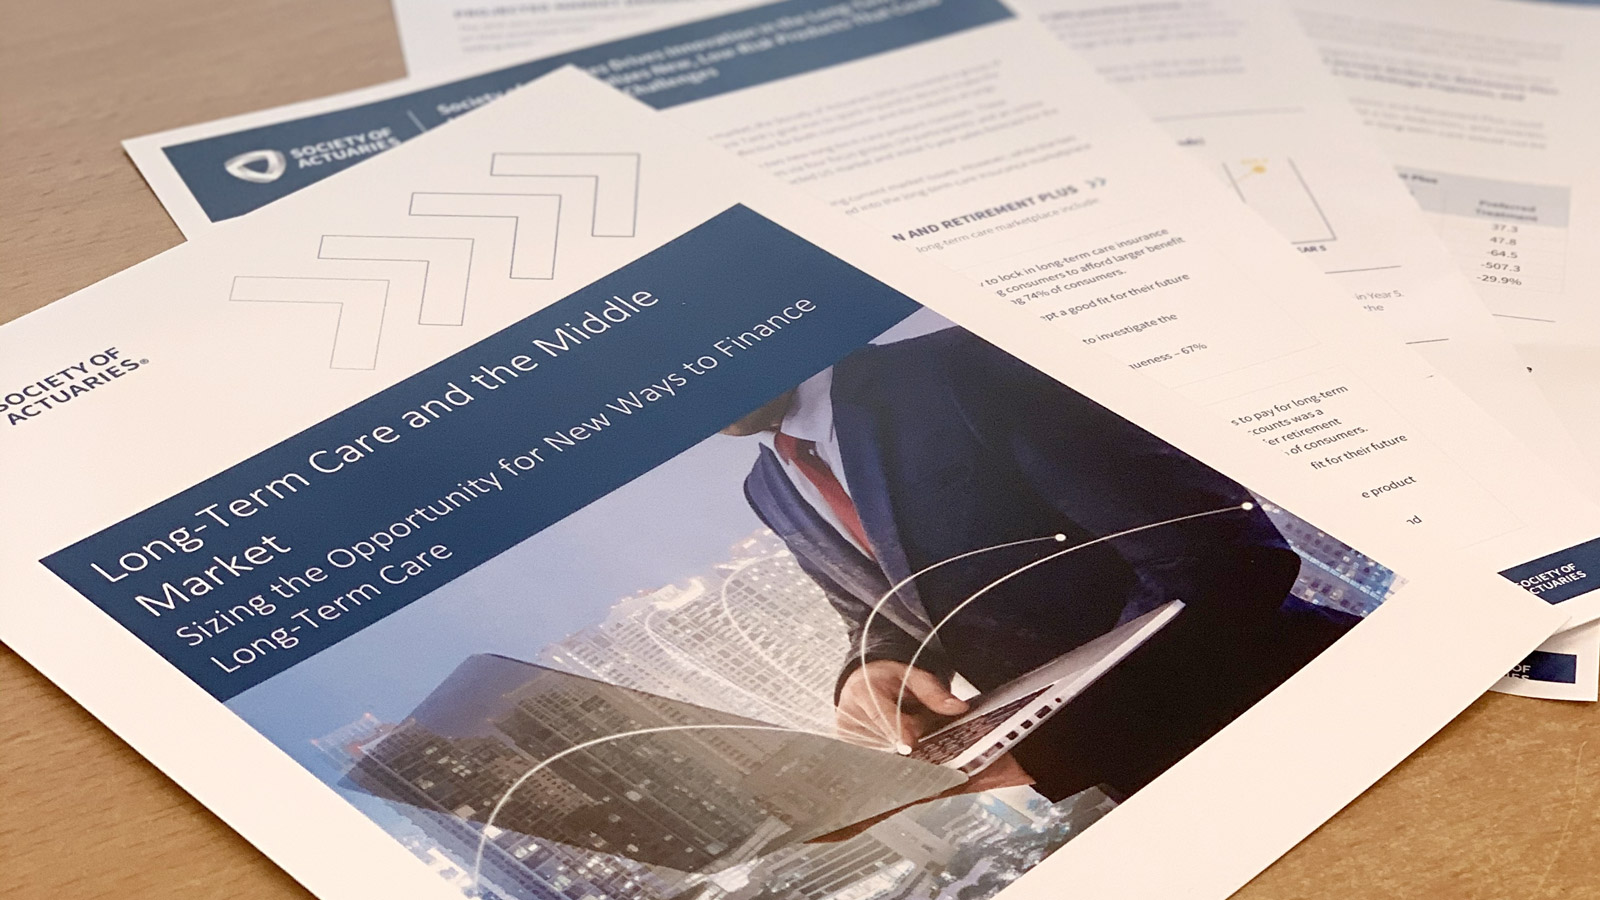 White papers written by the Society of Actuaries and Maddock Douglas to illustrate the opportunities created by the tested long-term concepts